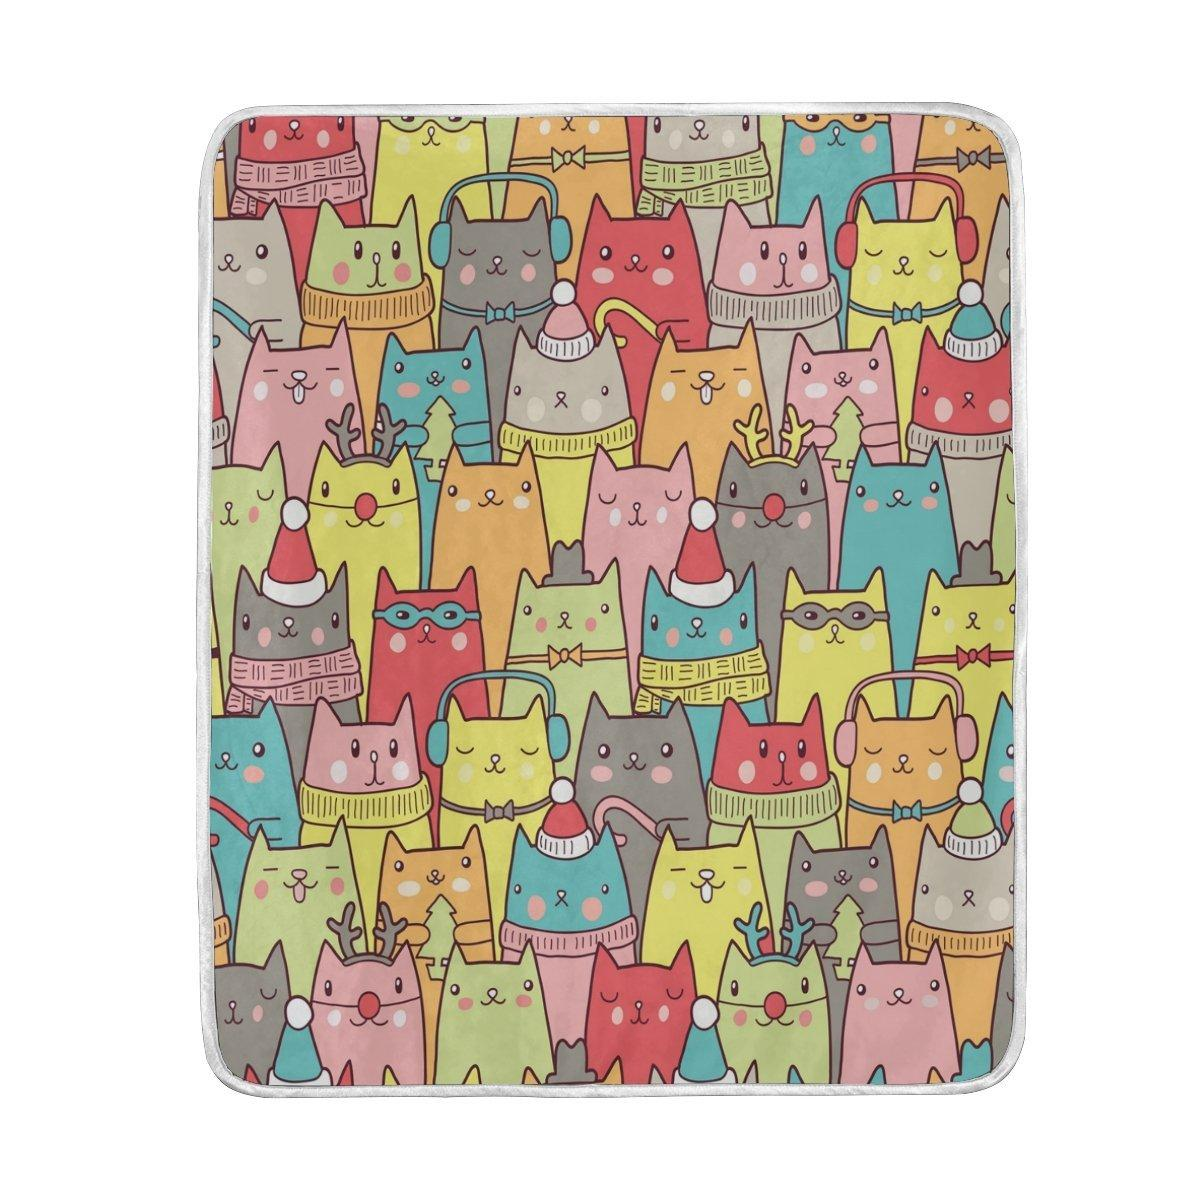 christmas colorful cute cat blanket soft warm cozy bed couch